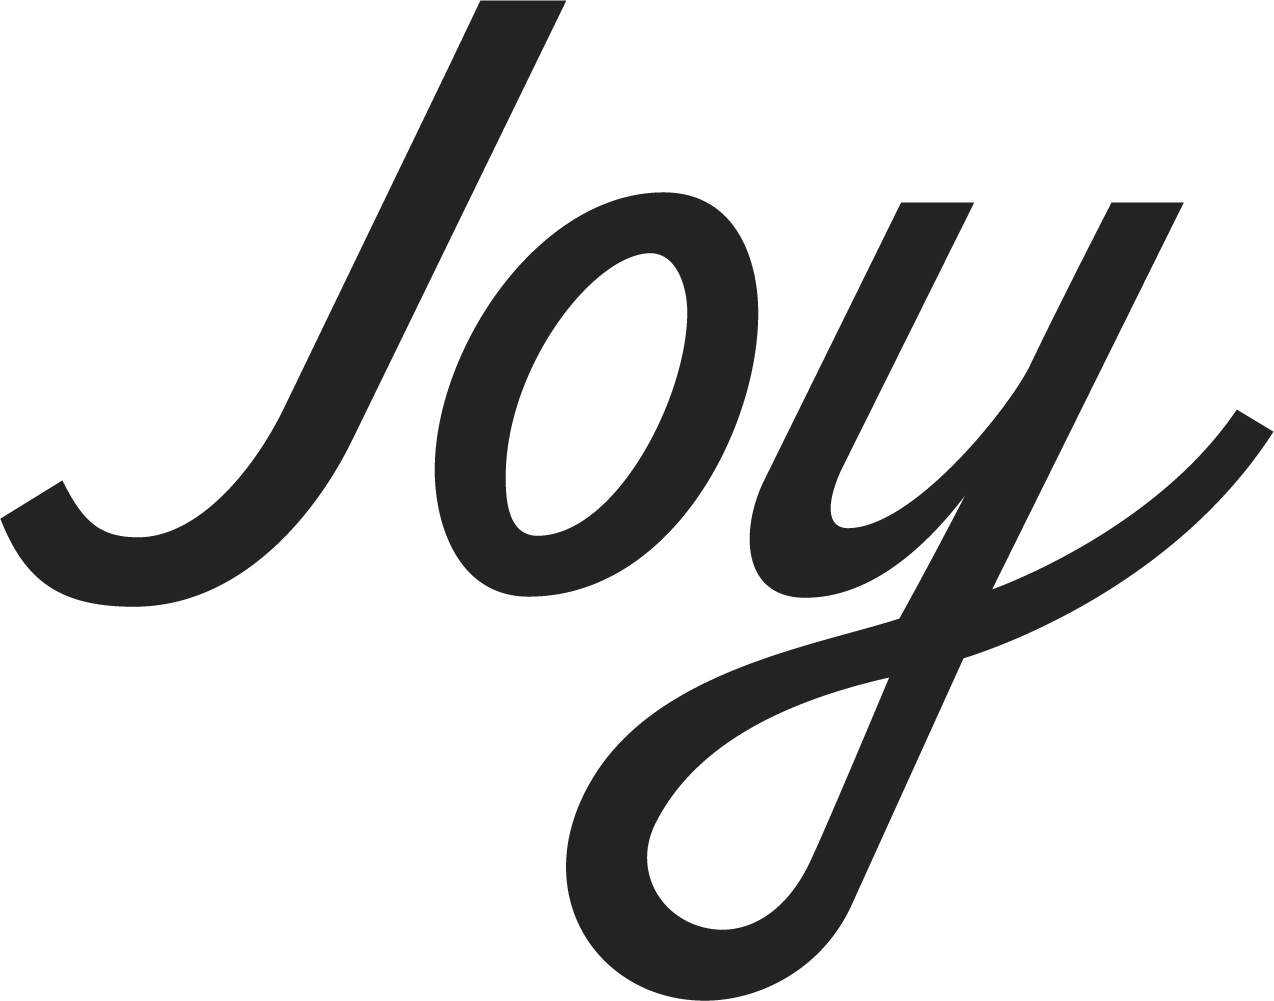 joy_logo_transparent.png